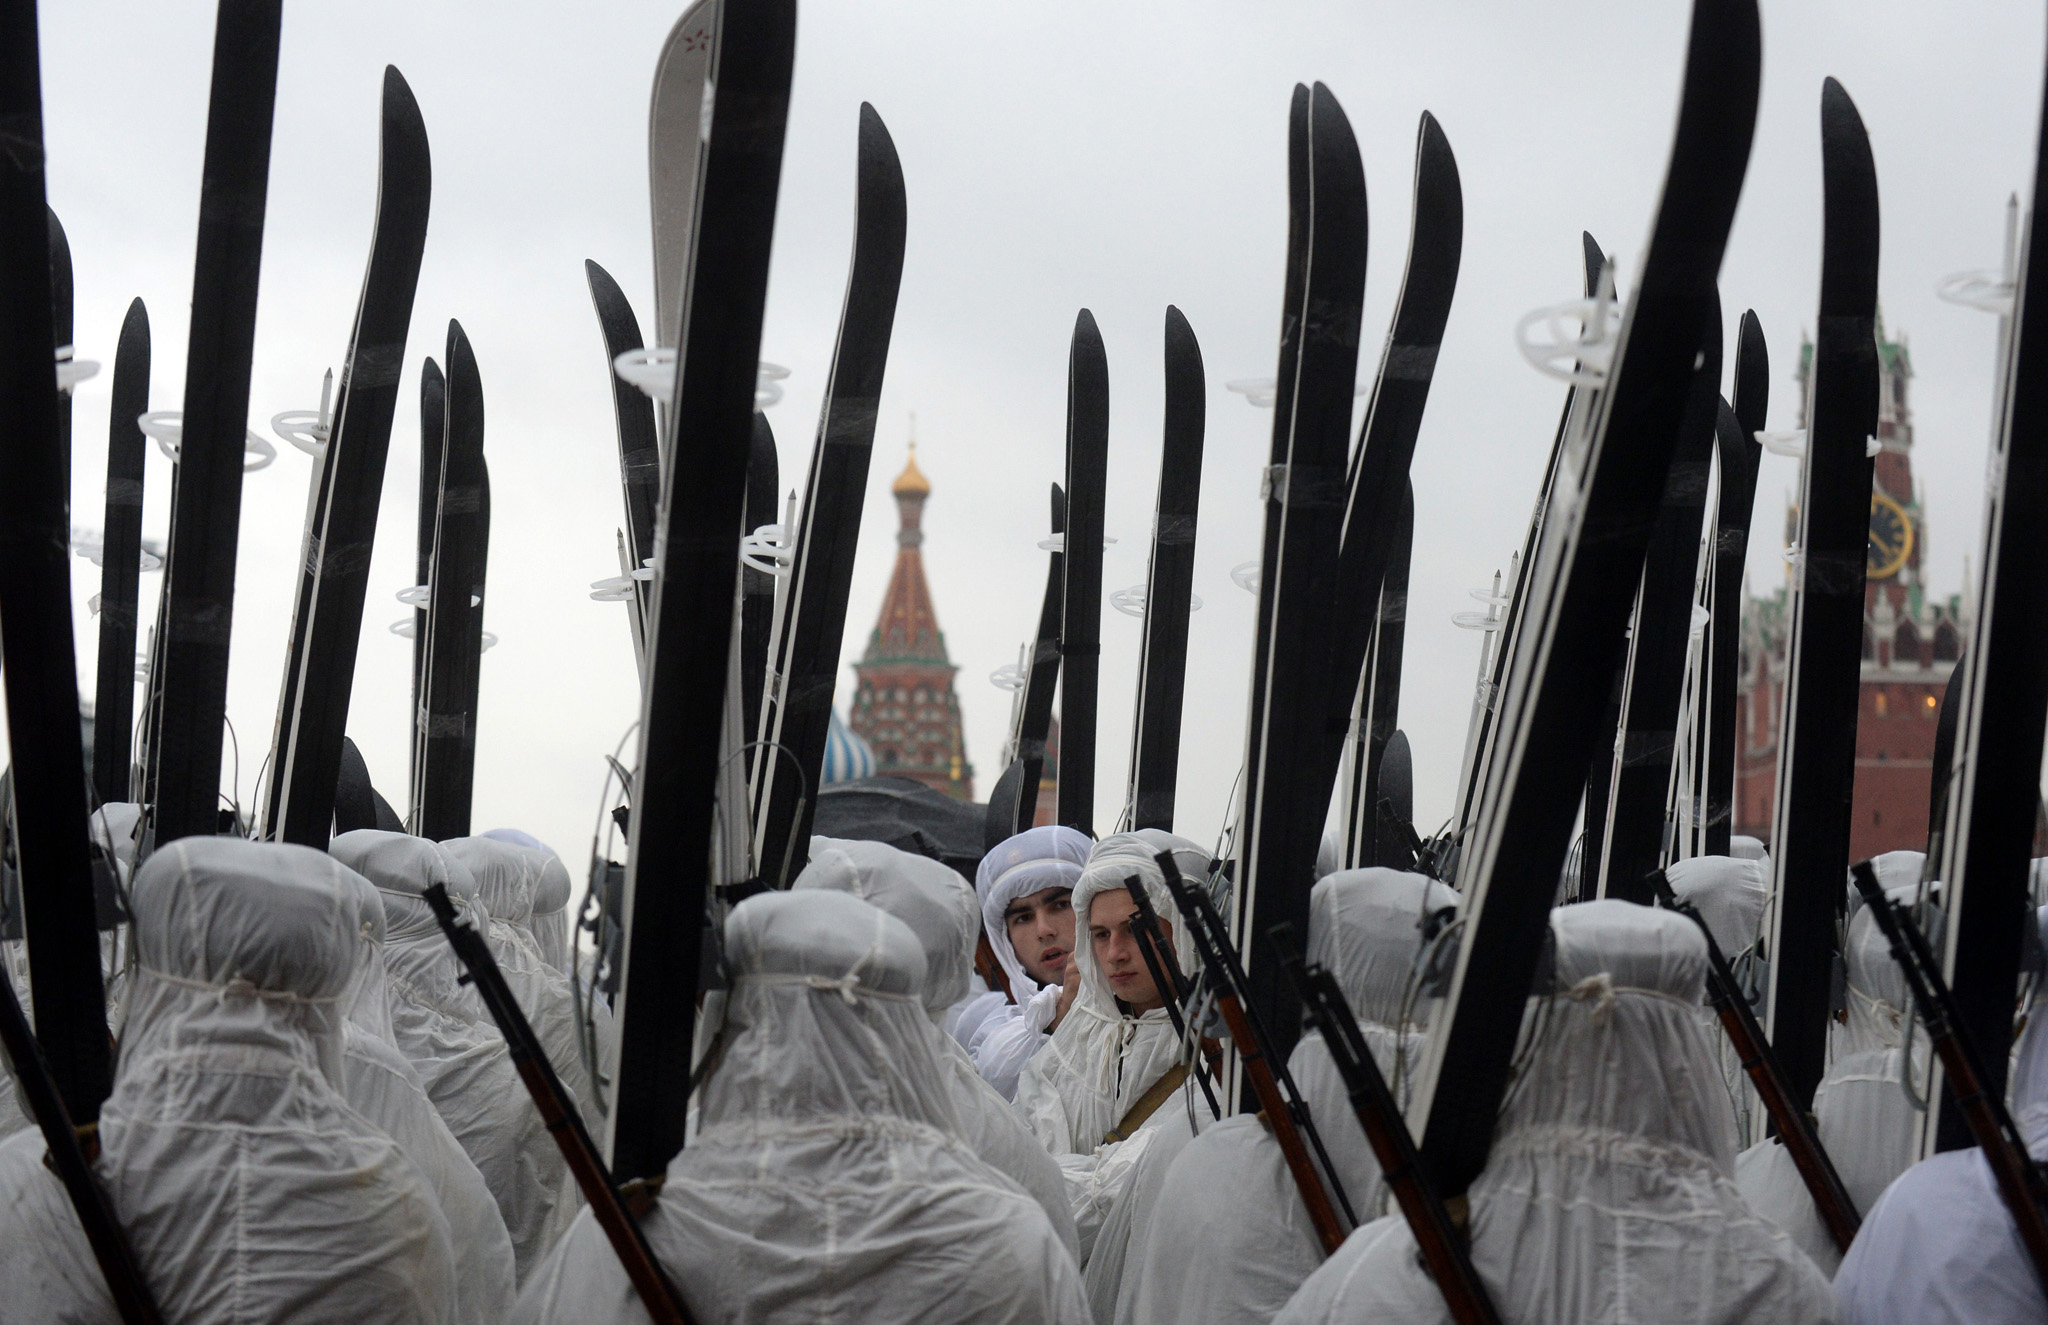 Russian soldiers wearing WWII-era white winter camouflage smocks, holding skis and carrying Mosin rifles stand at Red Square in Moscow, during a rehearsal of the upcoming military parade marking the 72nd anniversary of the November 7, 1941, parade, when Red Army troops marched past the Kremlin and then went directly to the front line to fight the German army which was at the gates of the Russian capital.